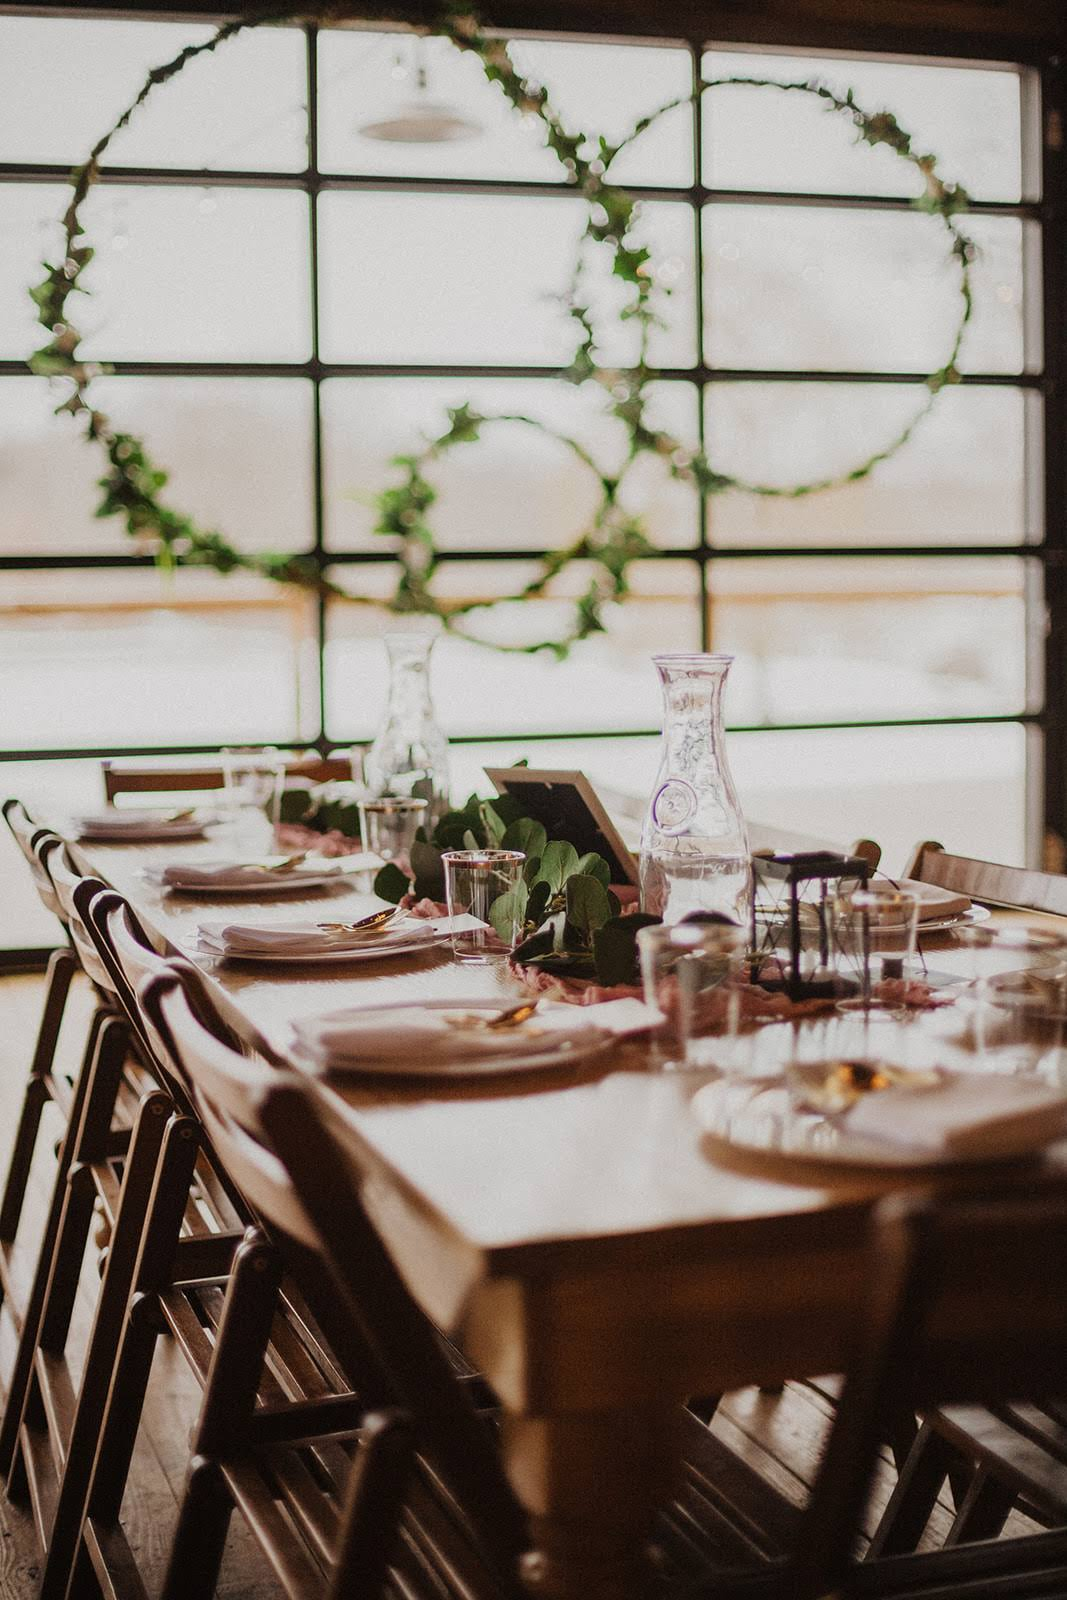 Tables were accented with gold silverware, mauve runners and eucalyptus garlands.